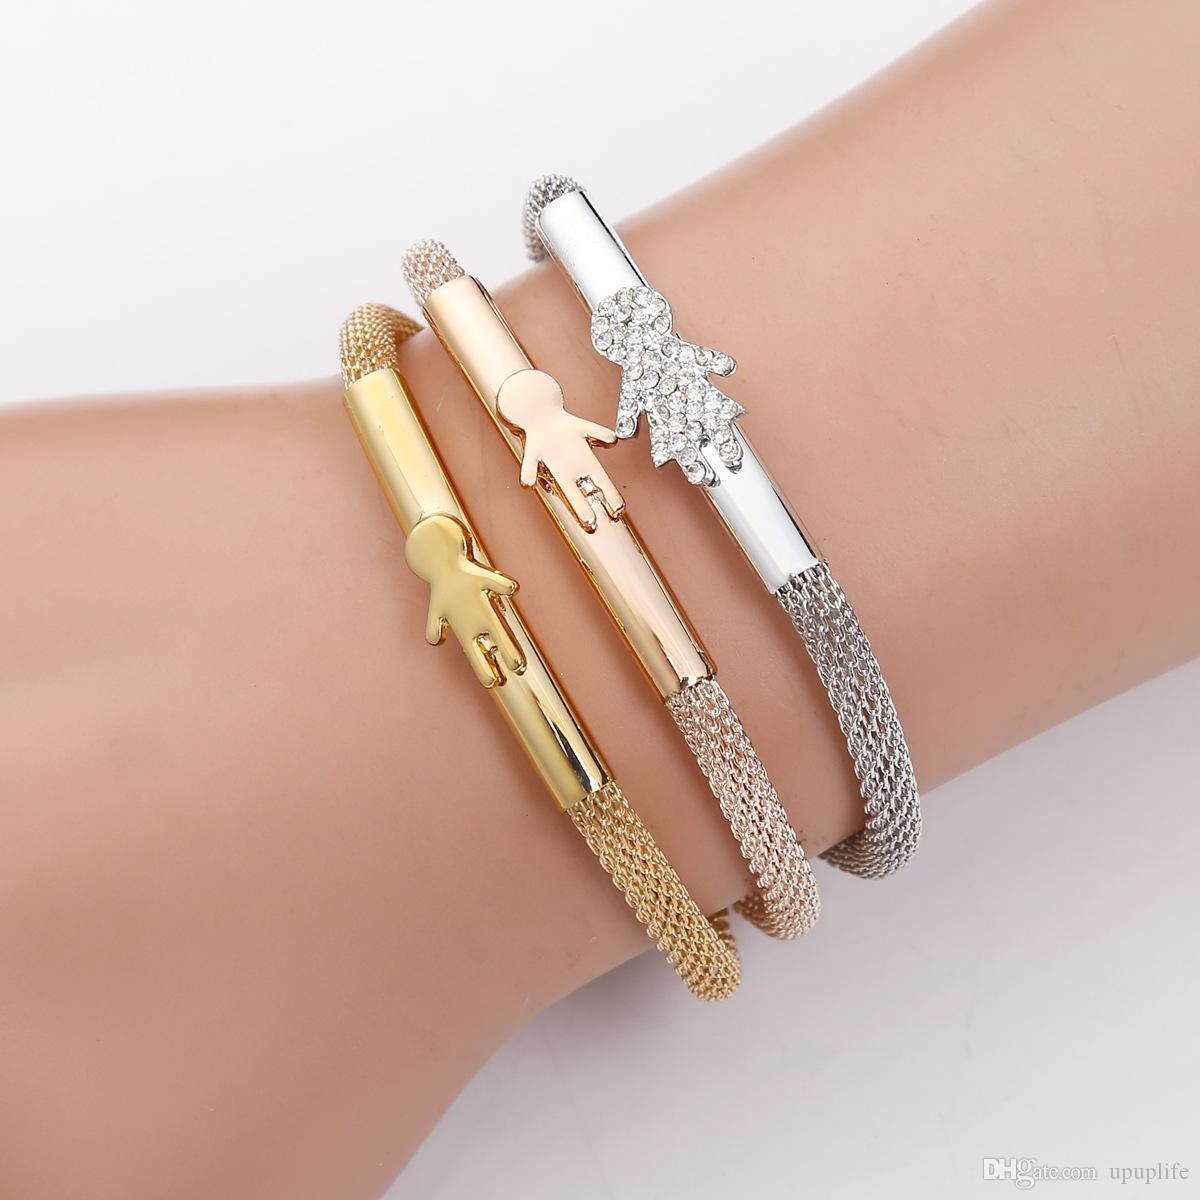 a21c411fa 2019 Fashion Simple Crystal Diamond Cartoon Characters Bracelet Stretch Bracelet  Silver Gold Rose Gold Three Piece From Upuplife, $2.9 | DHgate.Com